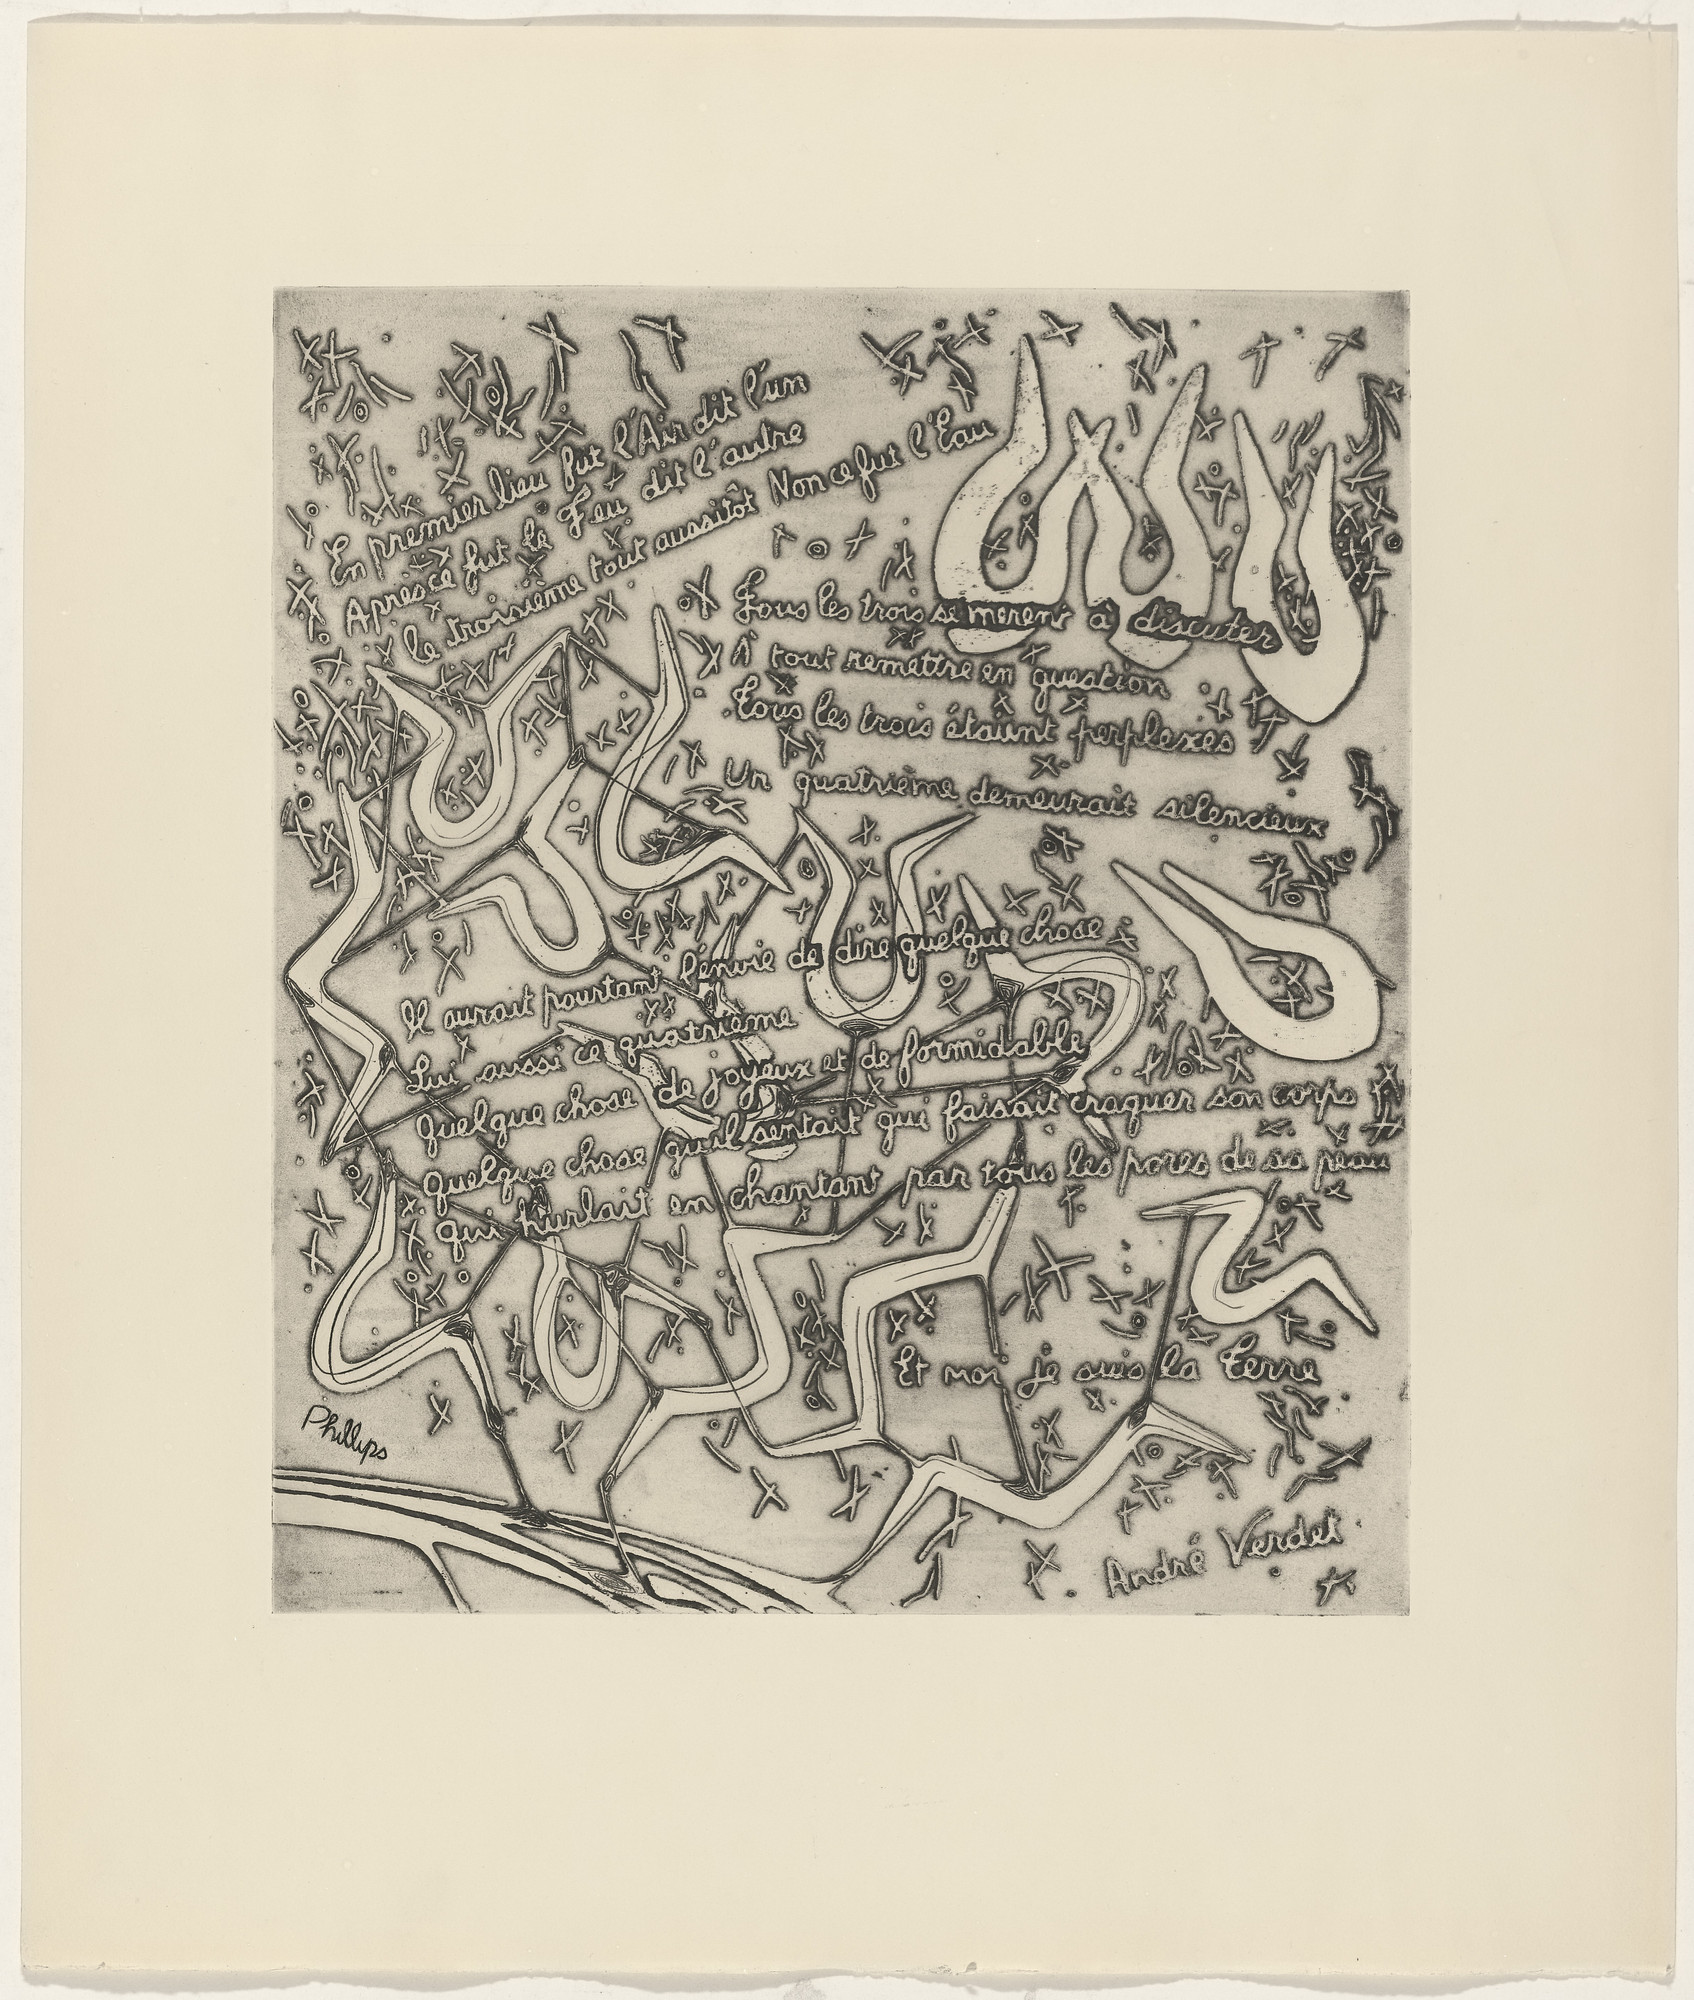 Helen Phillips, André Verdet. In-text plate (folio 17) from 21 Etchings and Poems. 1960